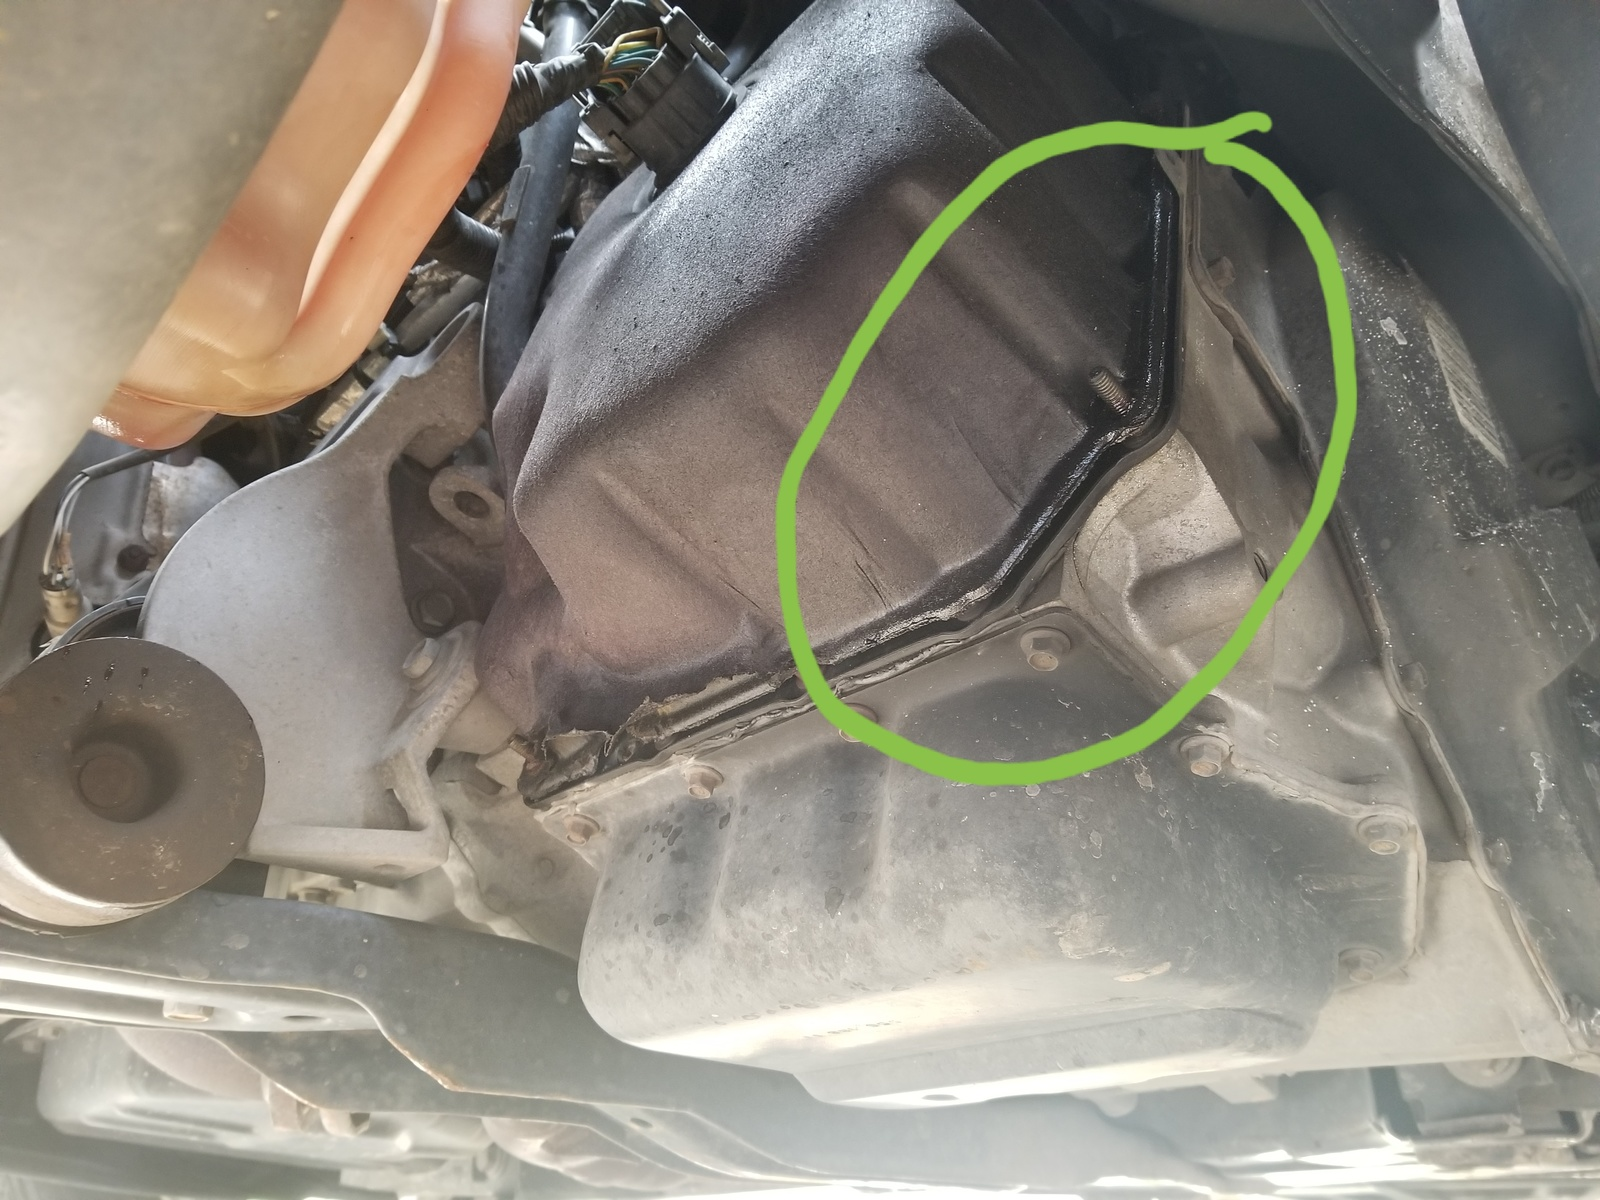 Dodge Grand Caravan Questions 2012 Coolant Kia Sedona Reservoir Found Where The Is Leaking I Have Added A Picture Of It Can Anyone Tell Me What This Part And How To Stop Leak